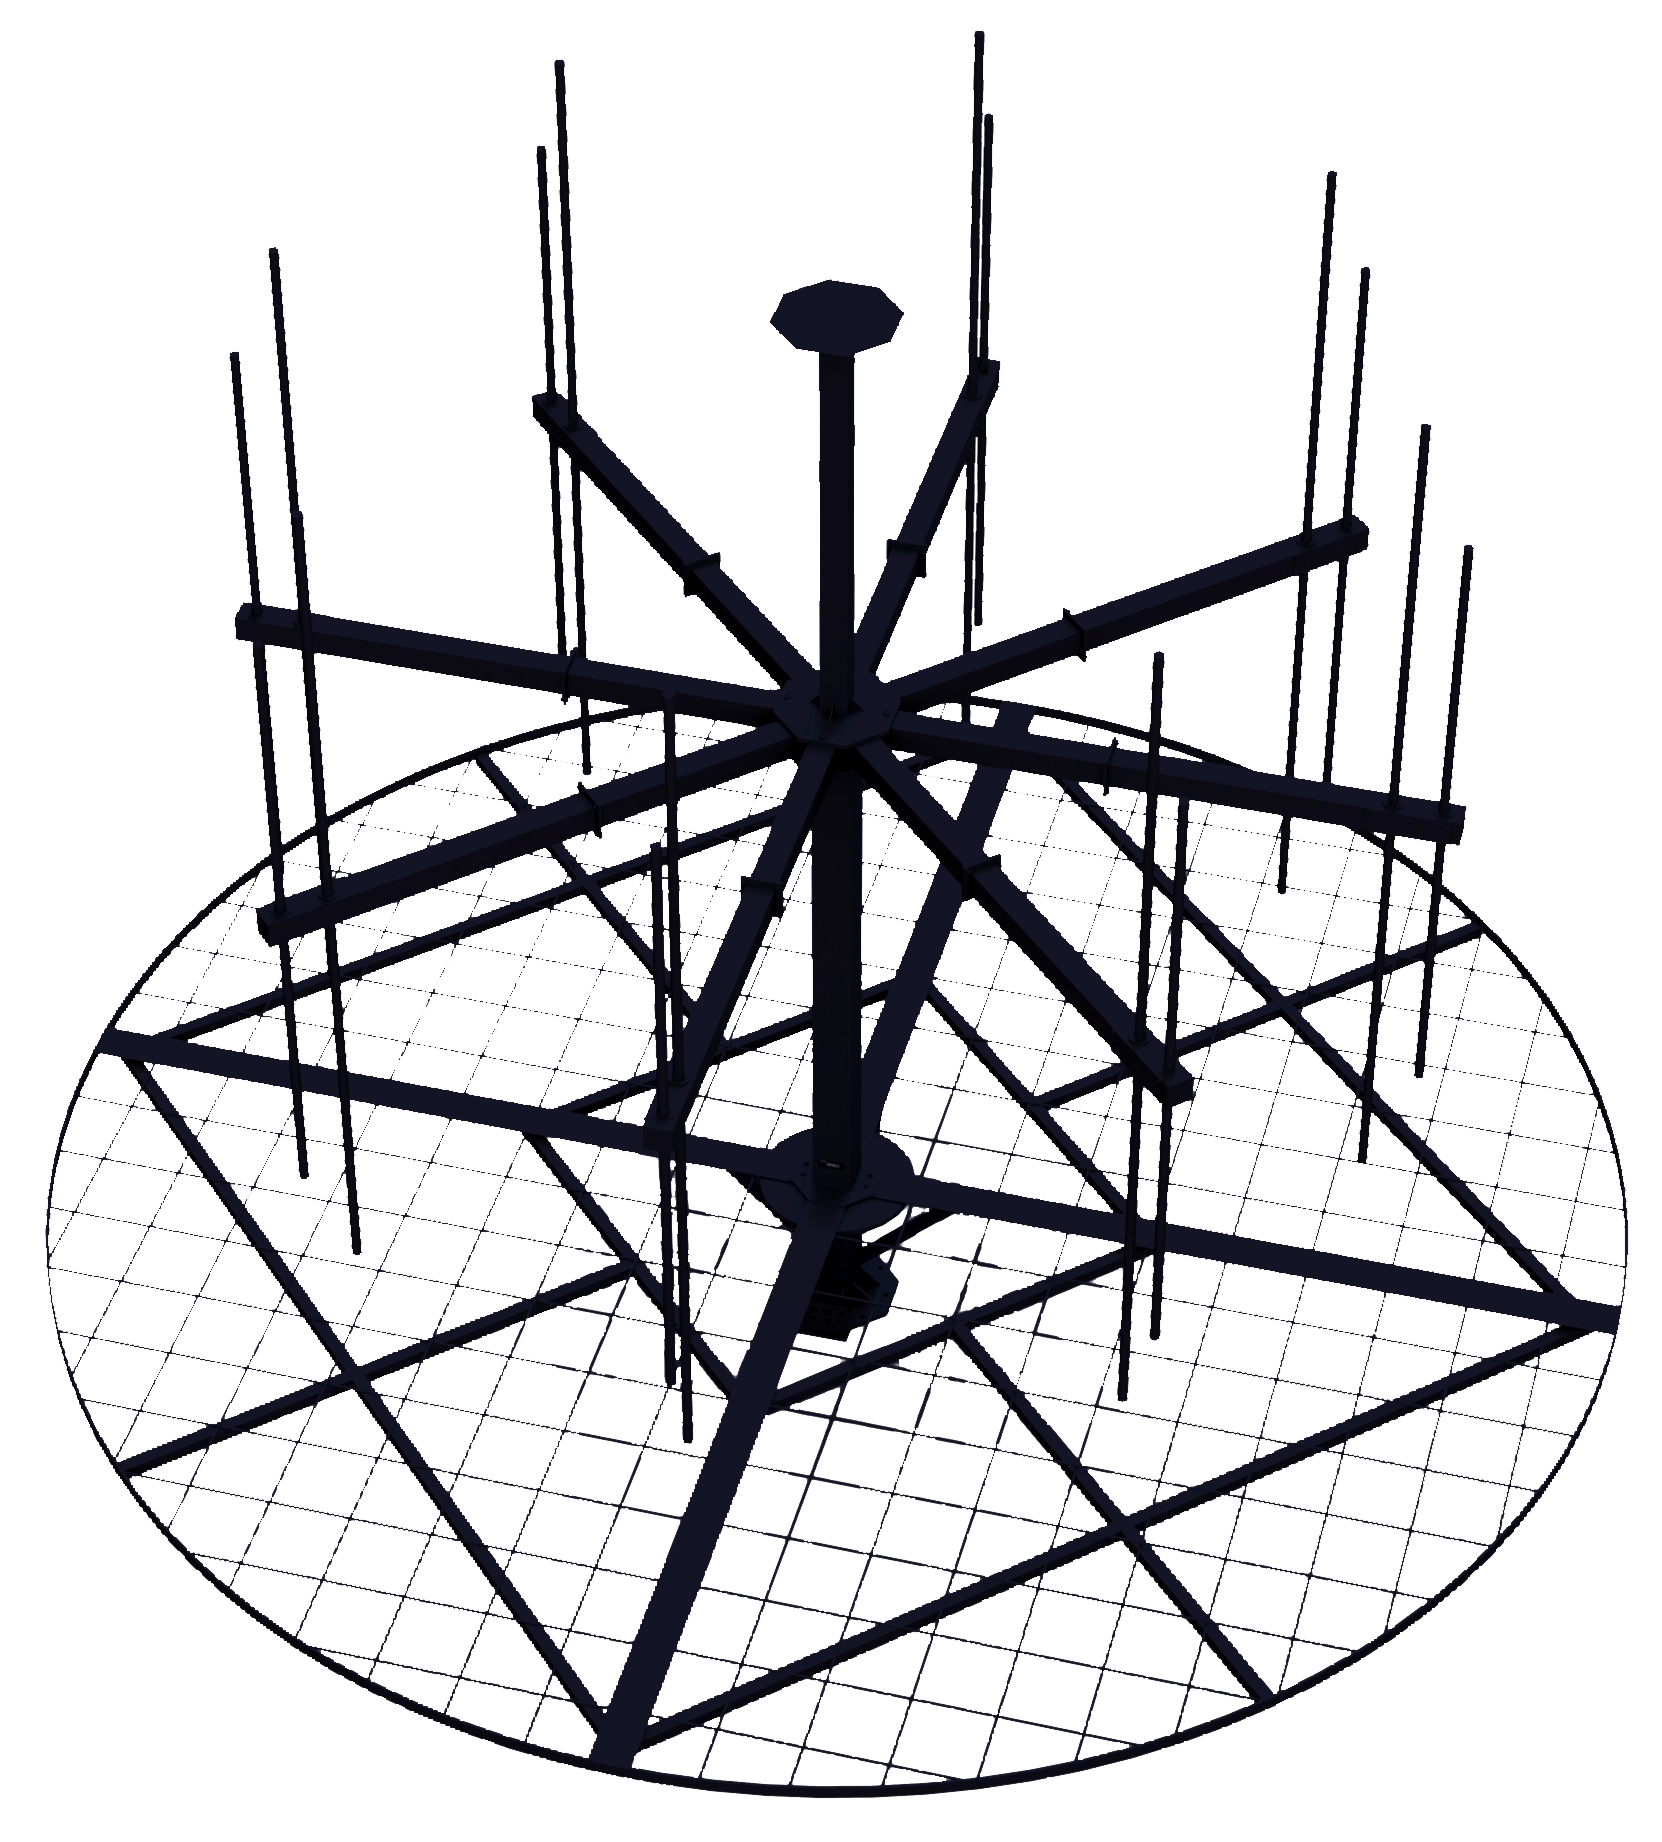 Mechanical Antenna Design: 2-Dimensional Rendering